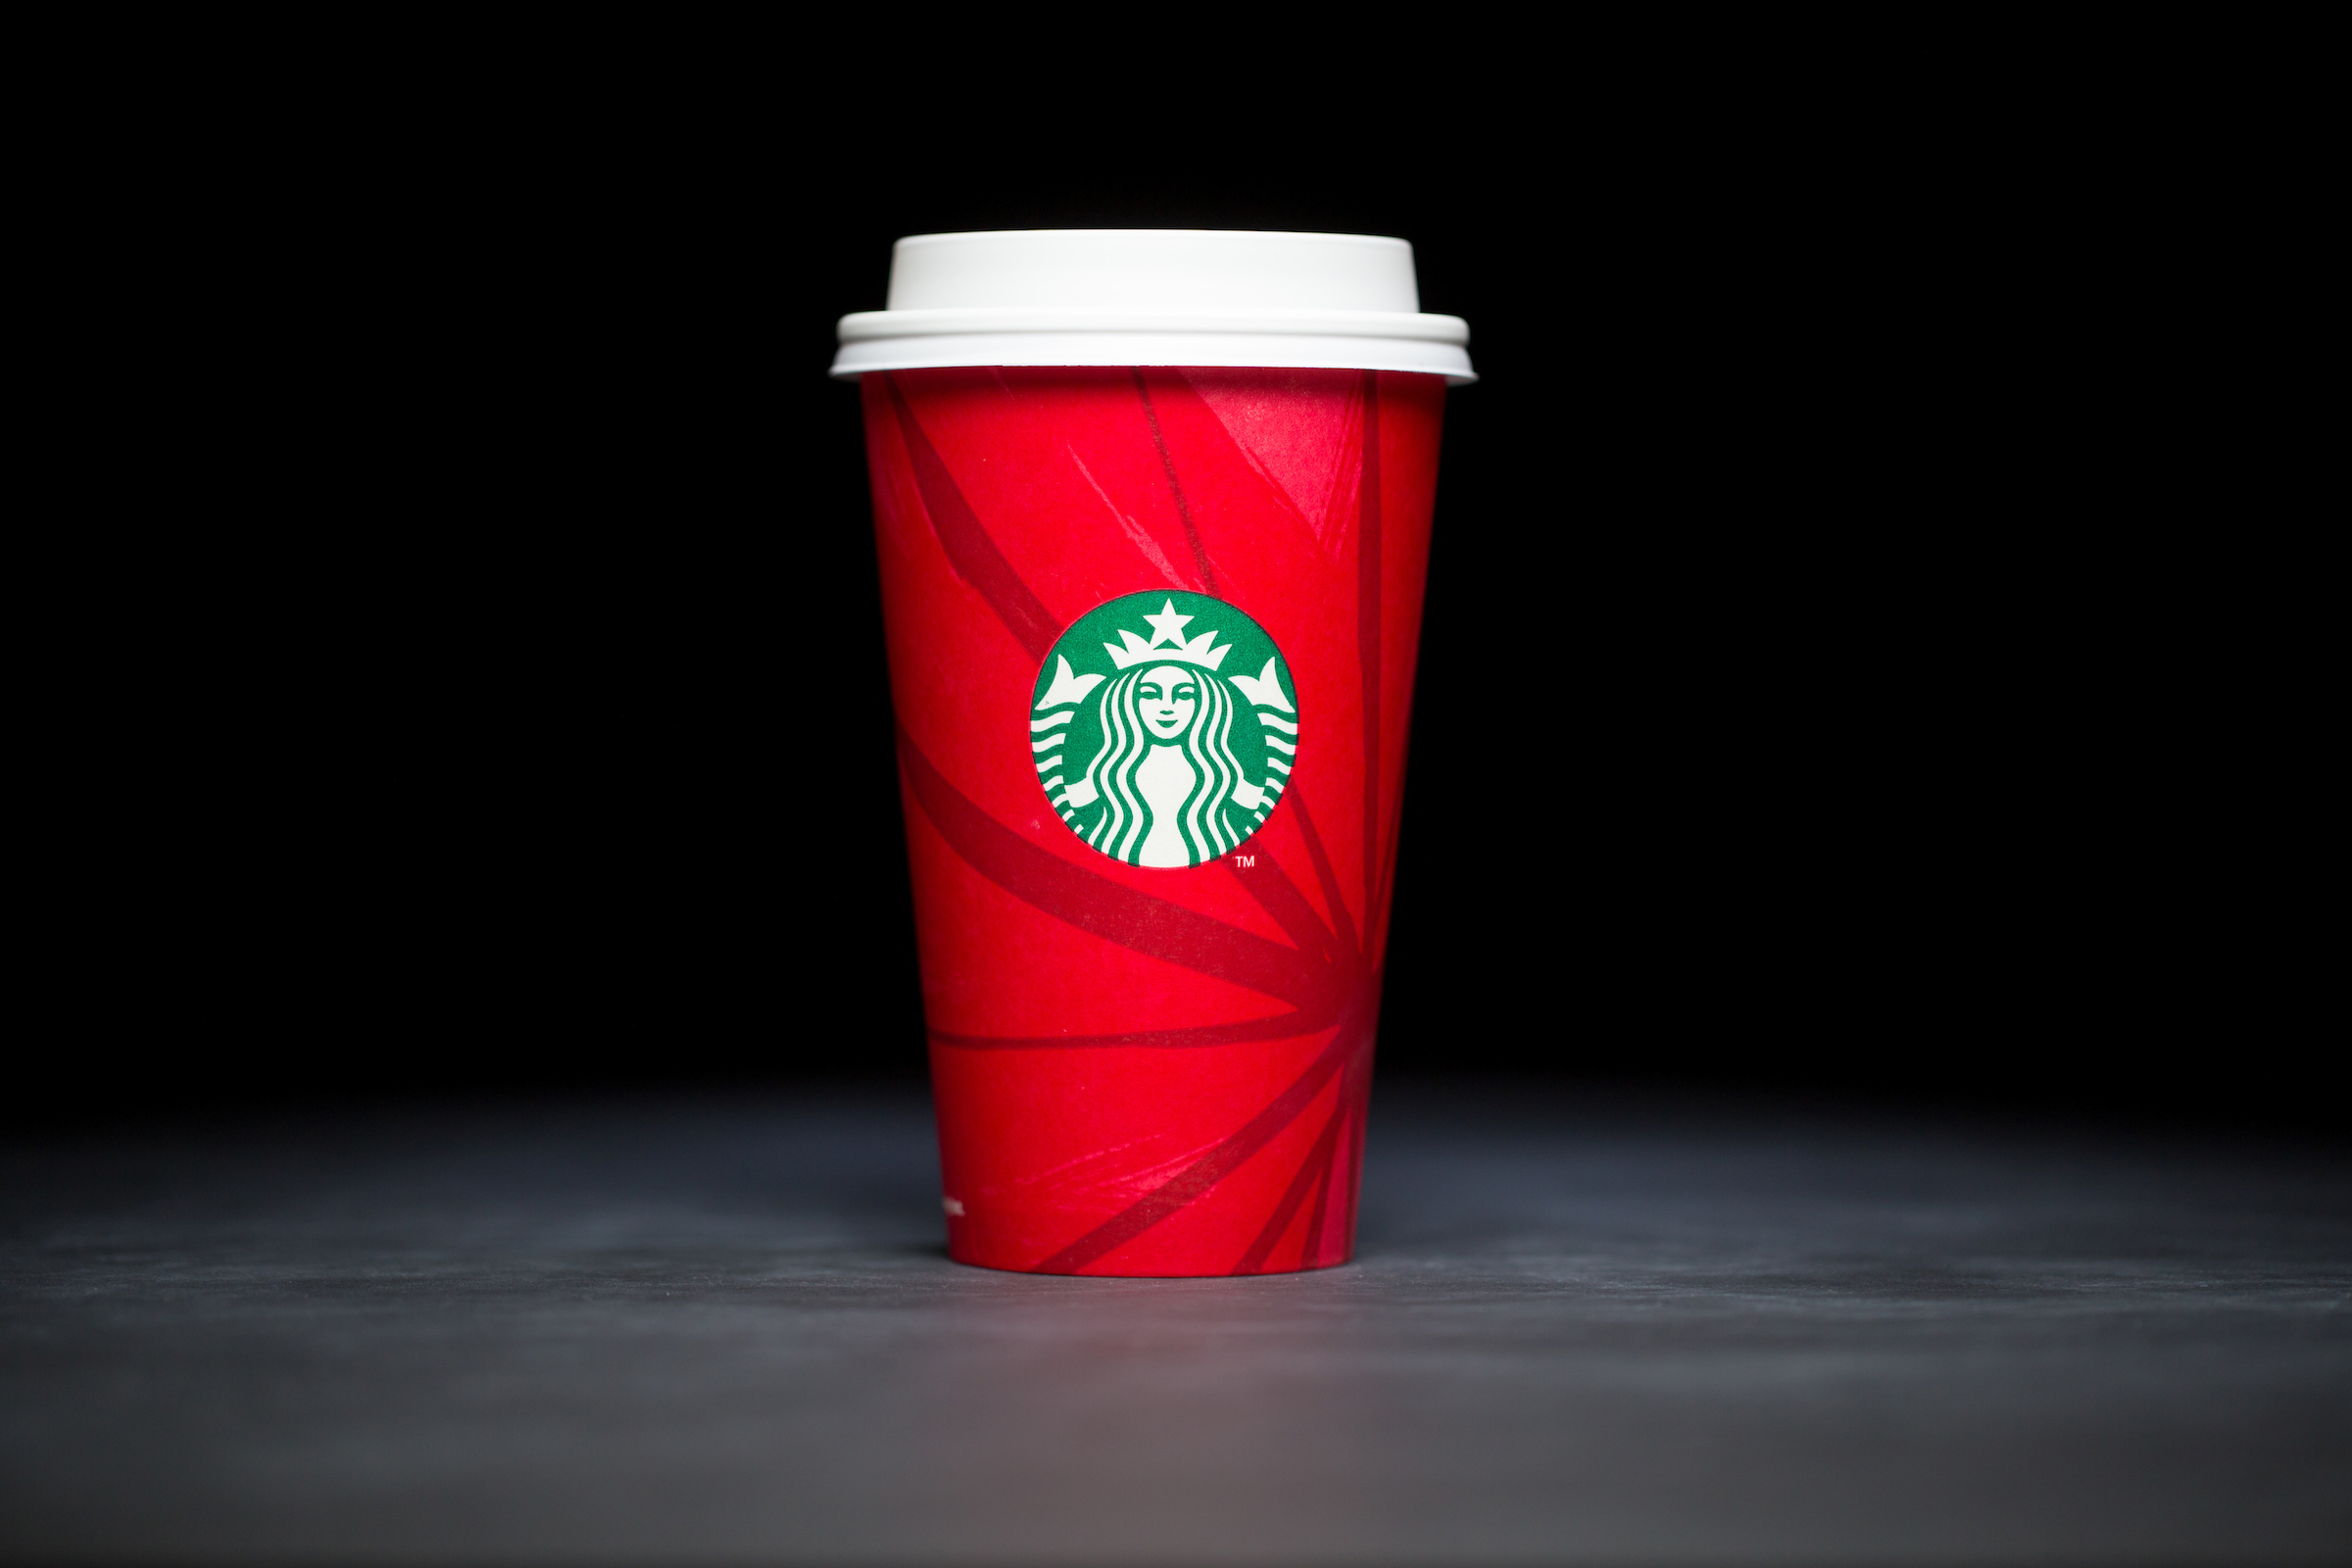 2014: For 20 years, Starbucks have released a range of holiday cup designs, most of them based around their world famous red cup. It's not easy to find the very first Starbucks holiday cups, which made their debut in stores in 1997. Few were saved, and electronic design files were lost in an earthquake in 2001. Even an Internet search is unyielding, with the cups having made their arrival long before the first selfie. But, we have them here! Click on for a photos of all 20 holidays cup designs. (Image: Joshua Trujillo/Cover Images)